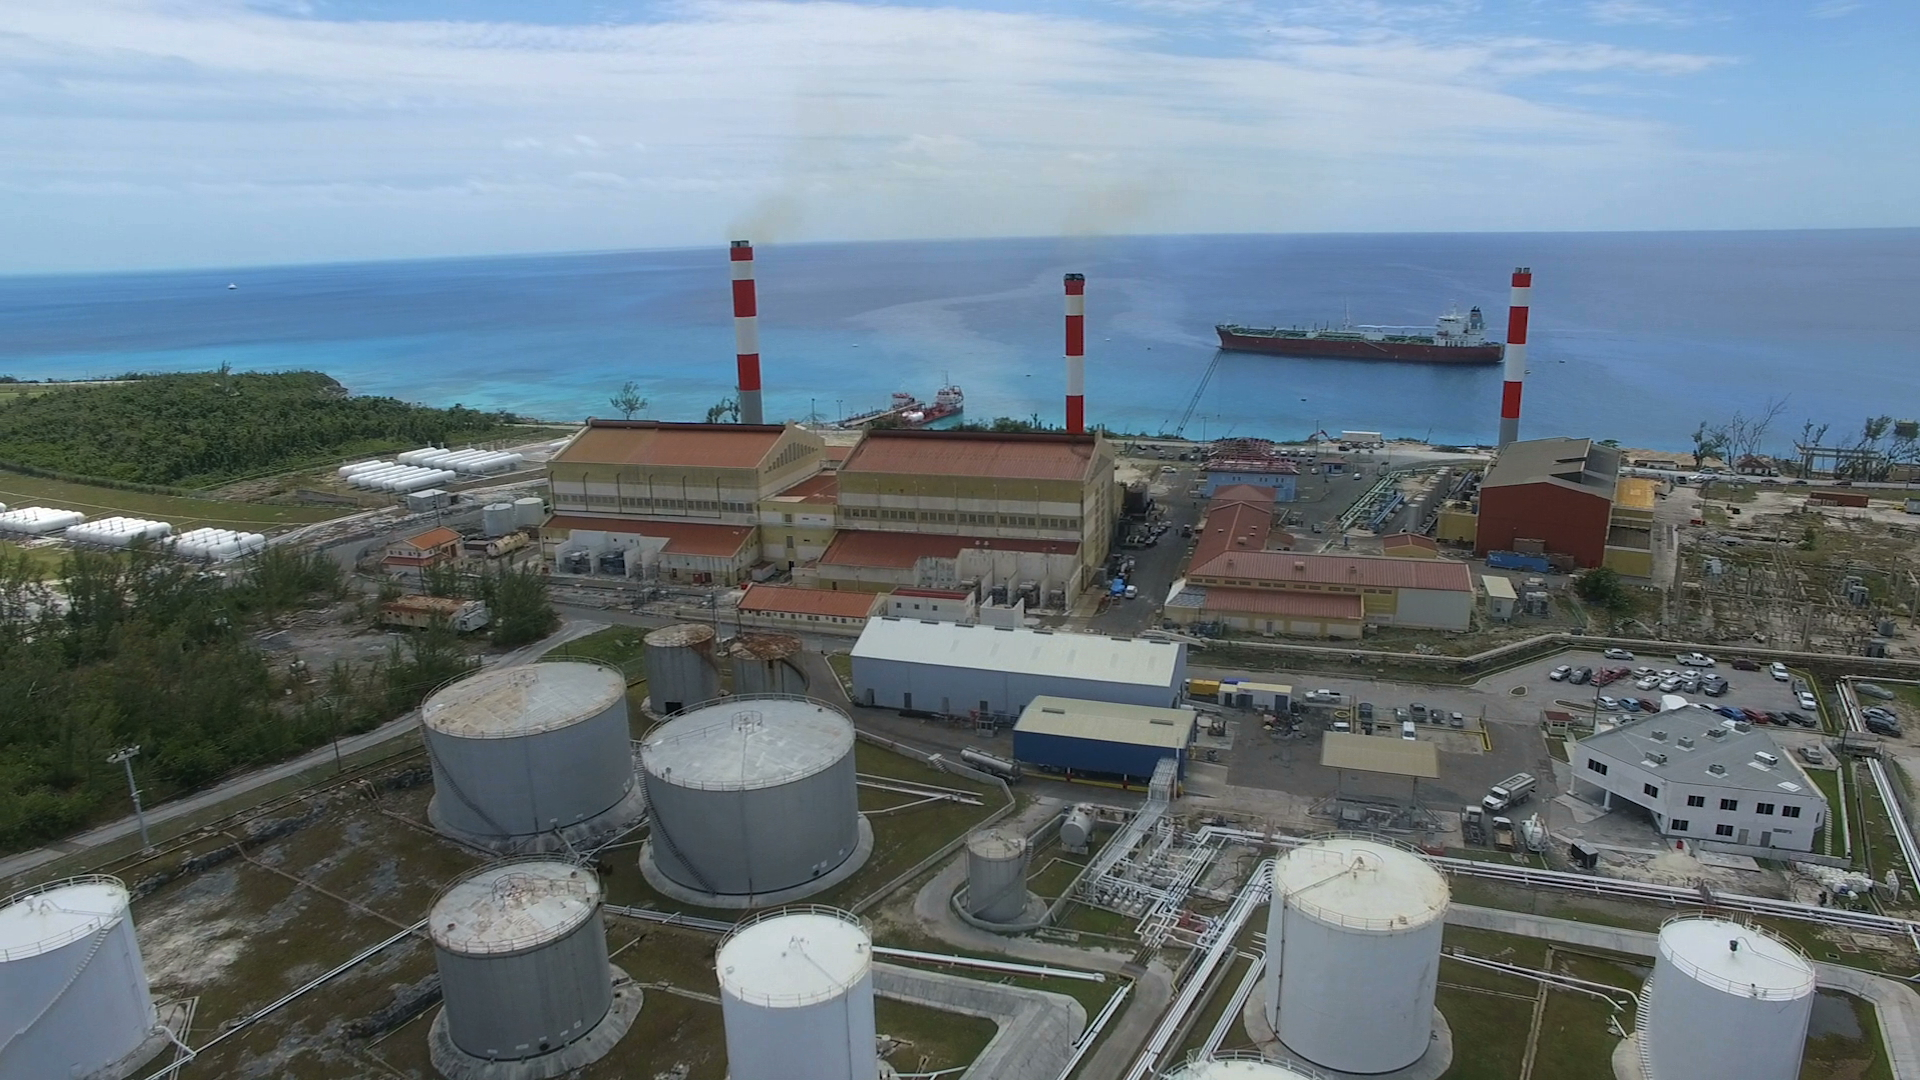 BPL power plant RFP potentially flawed